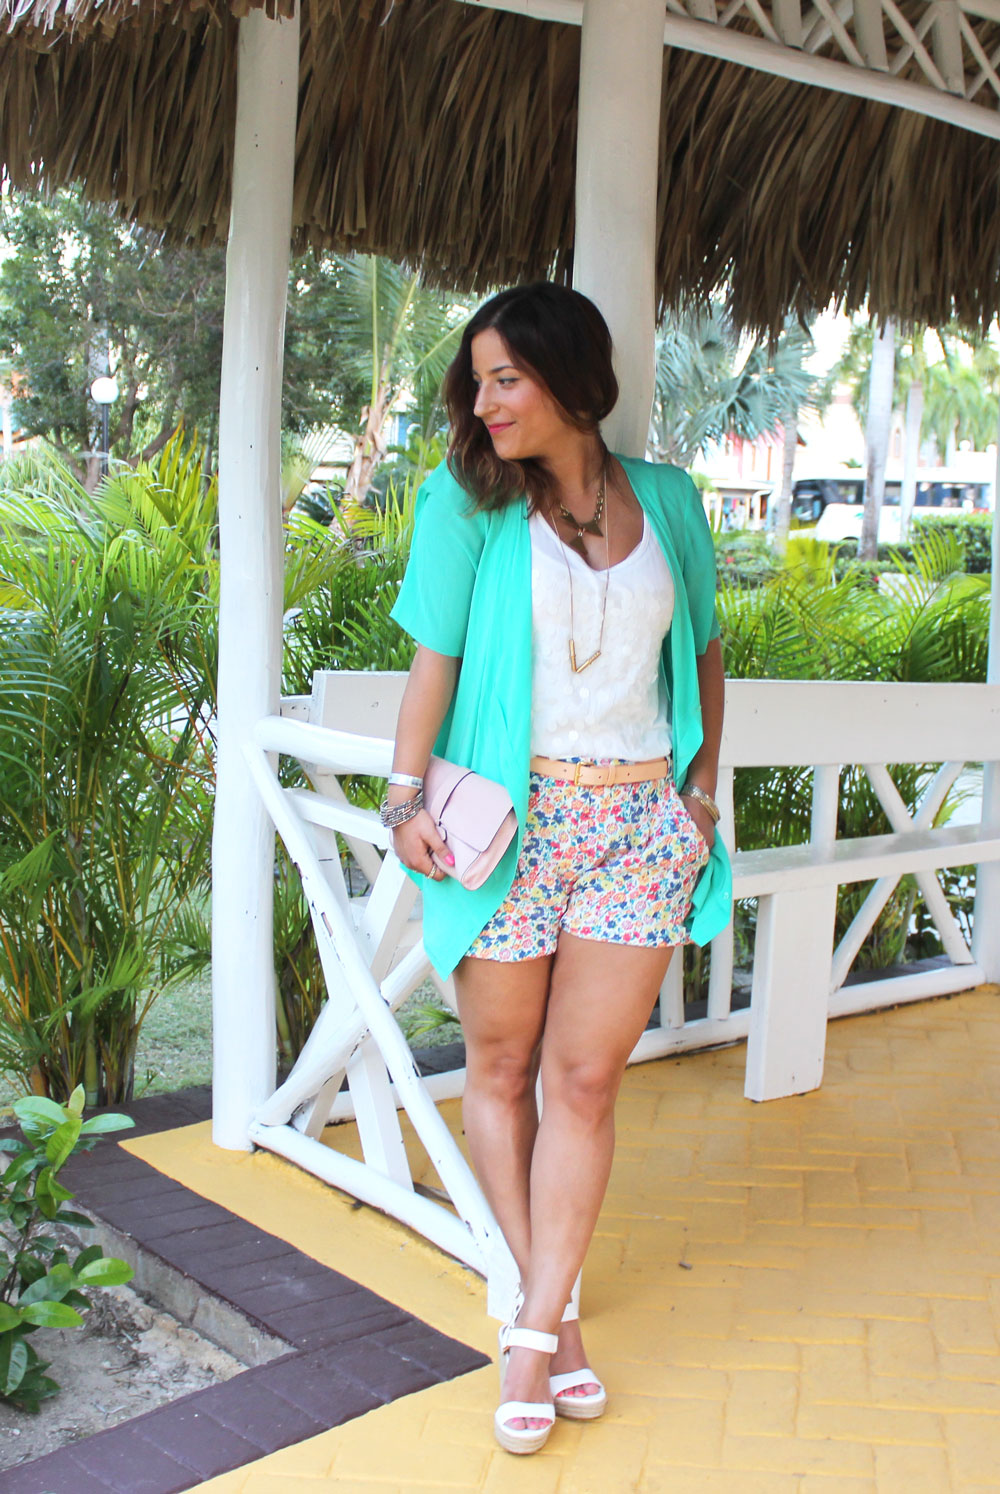 Canadian fashion blogger - how to dress for spring break vacation